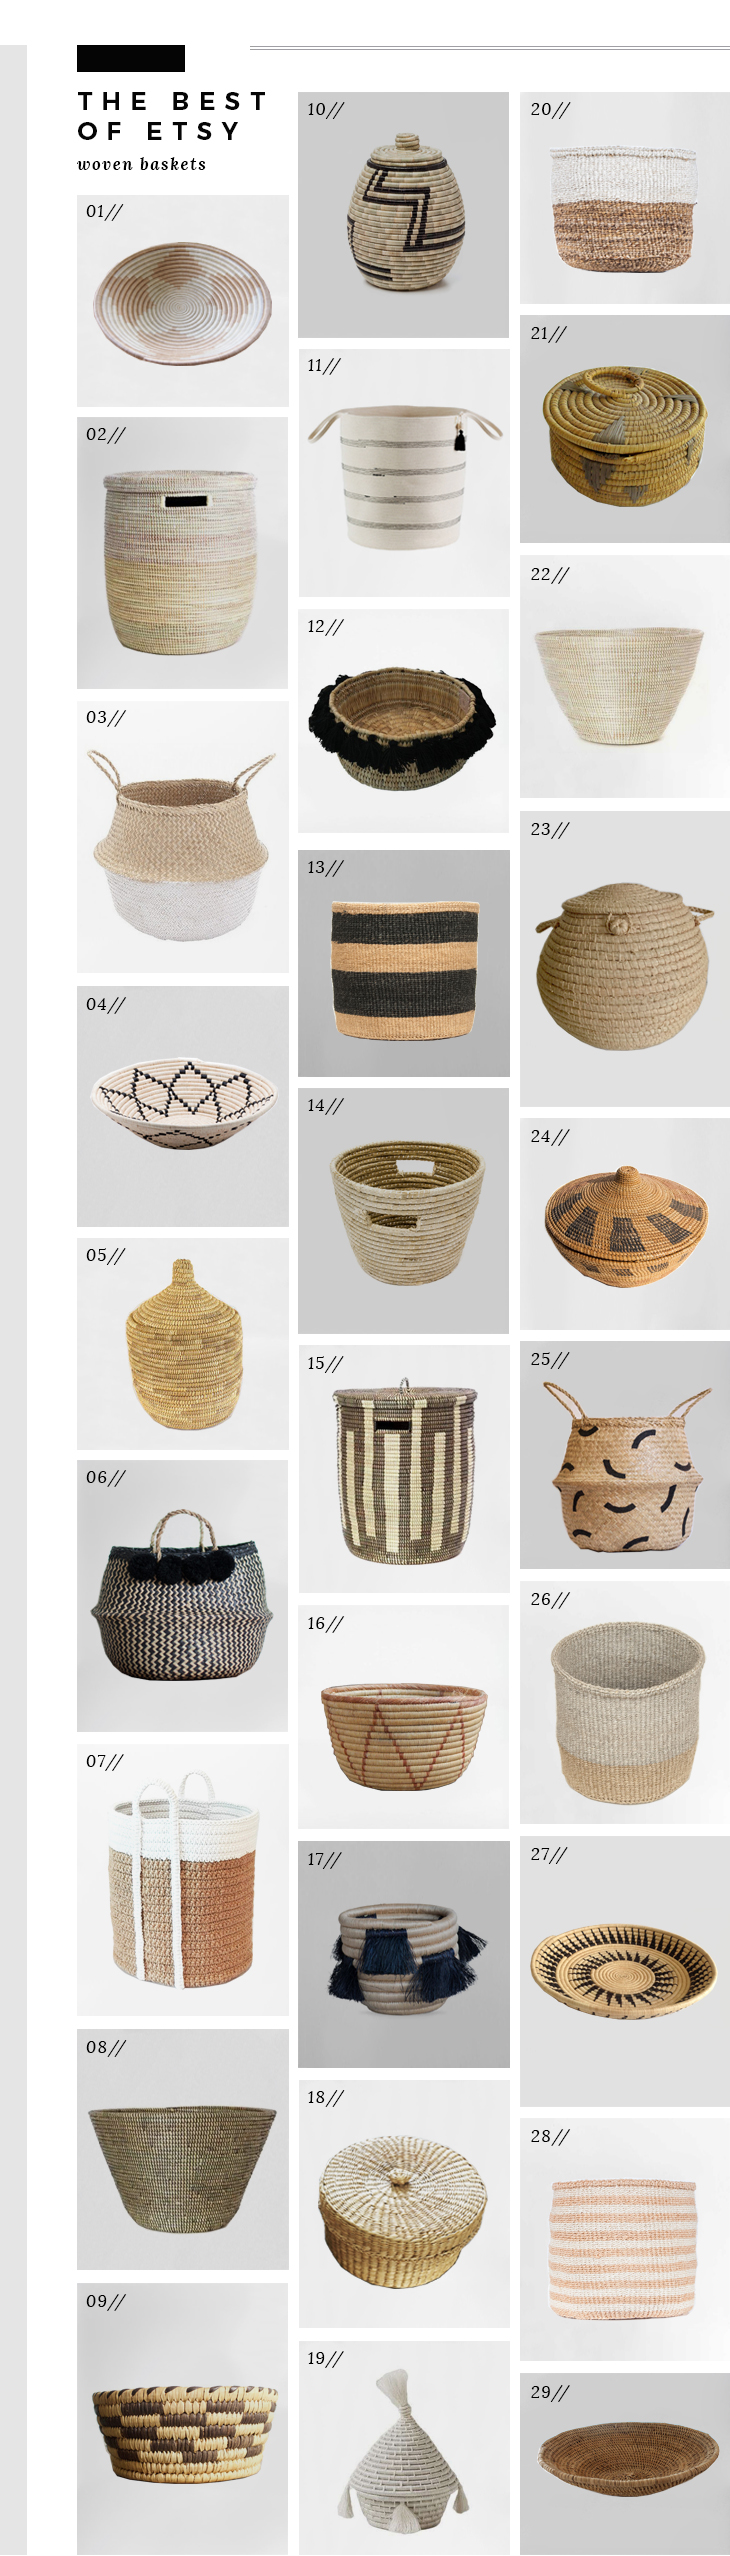 best of etsy woven baskets